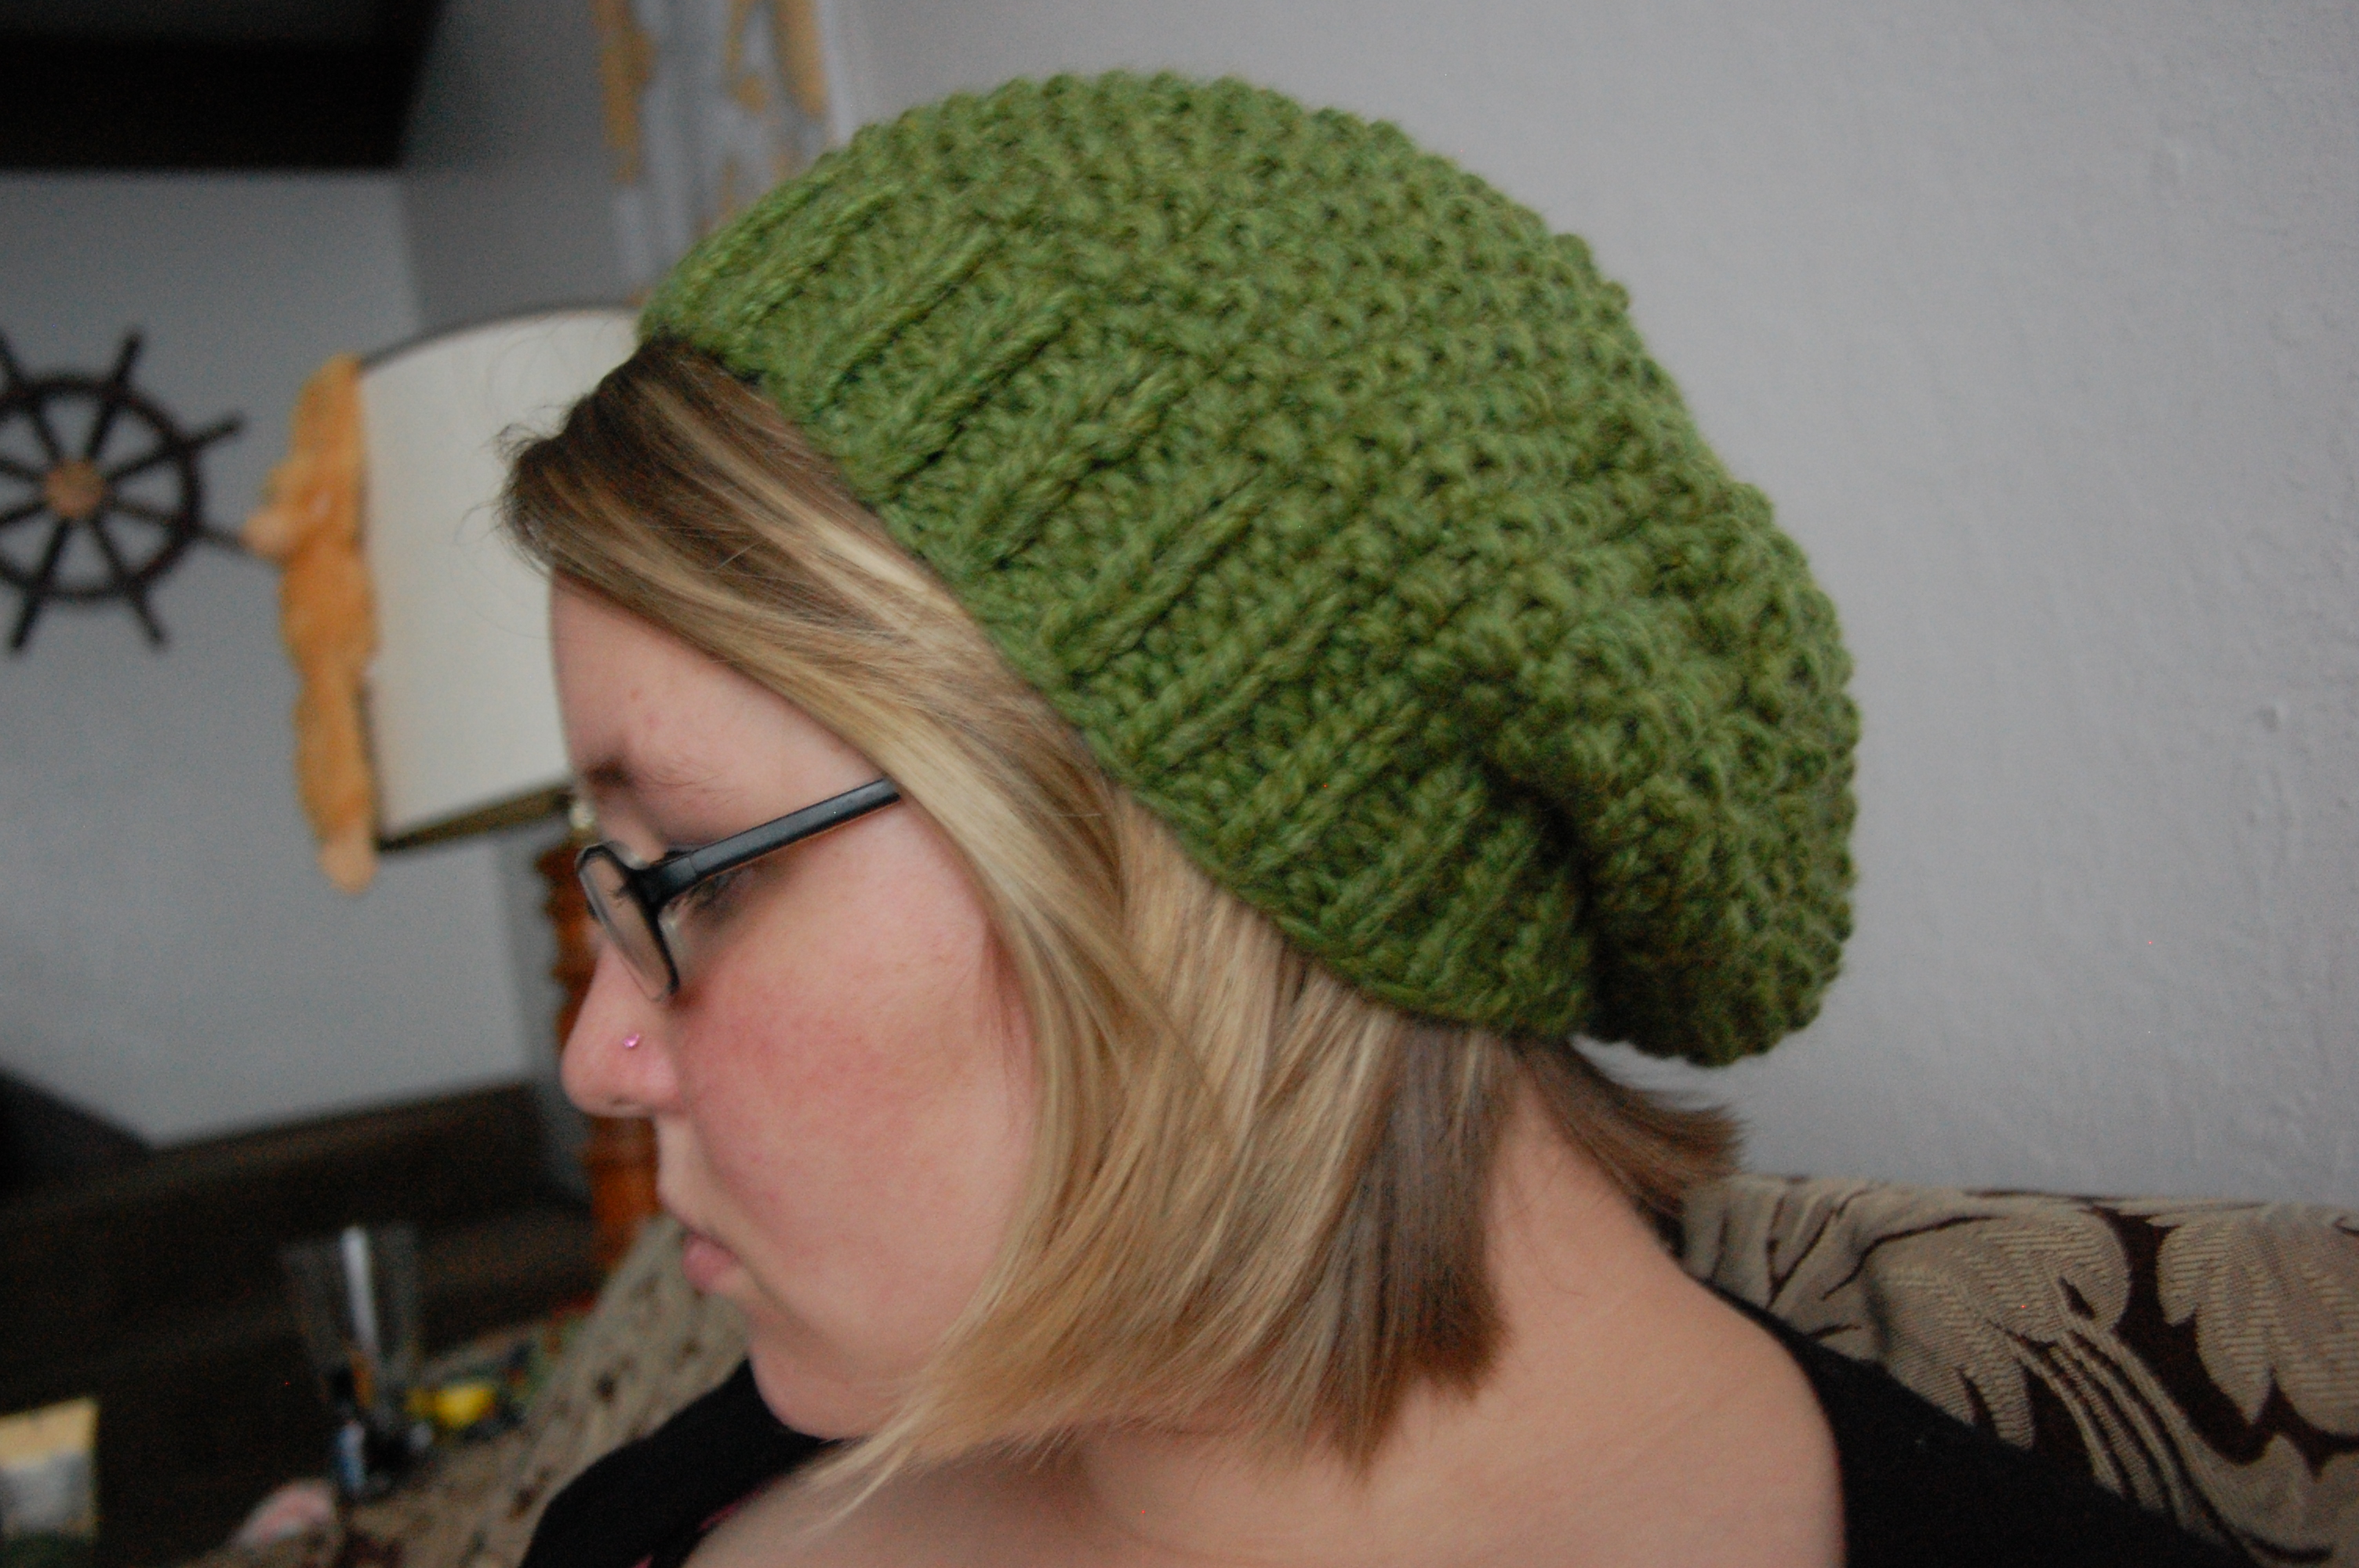 Easy Knitting Pattern For A Hat : Lemon Grass Hat! Knittybutton